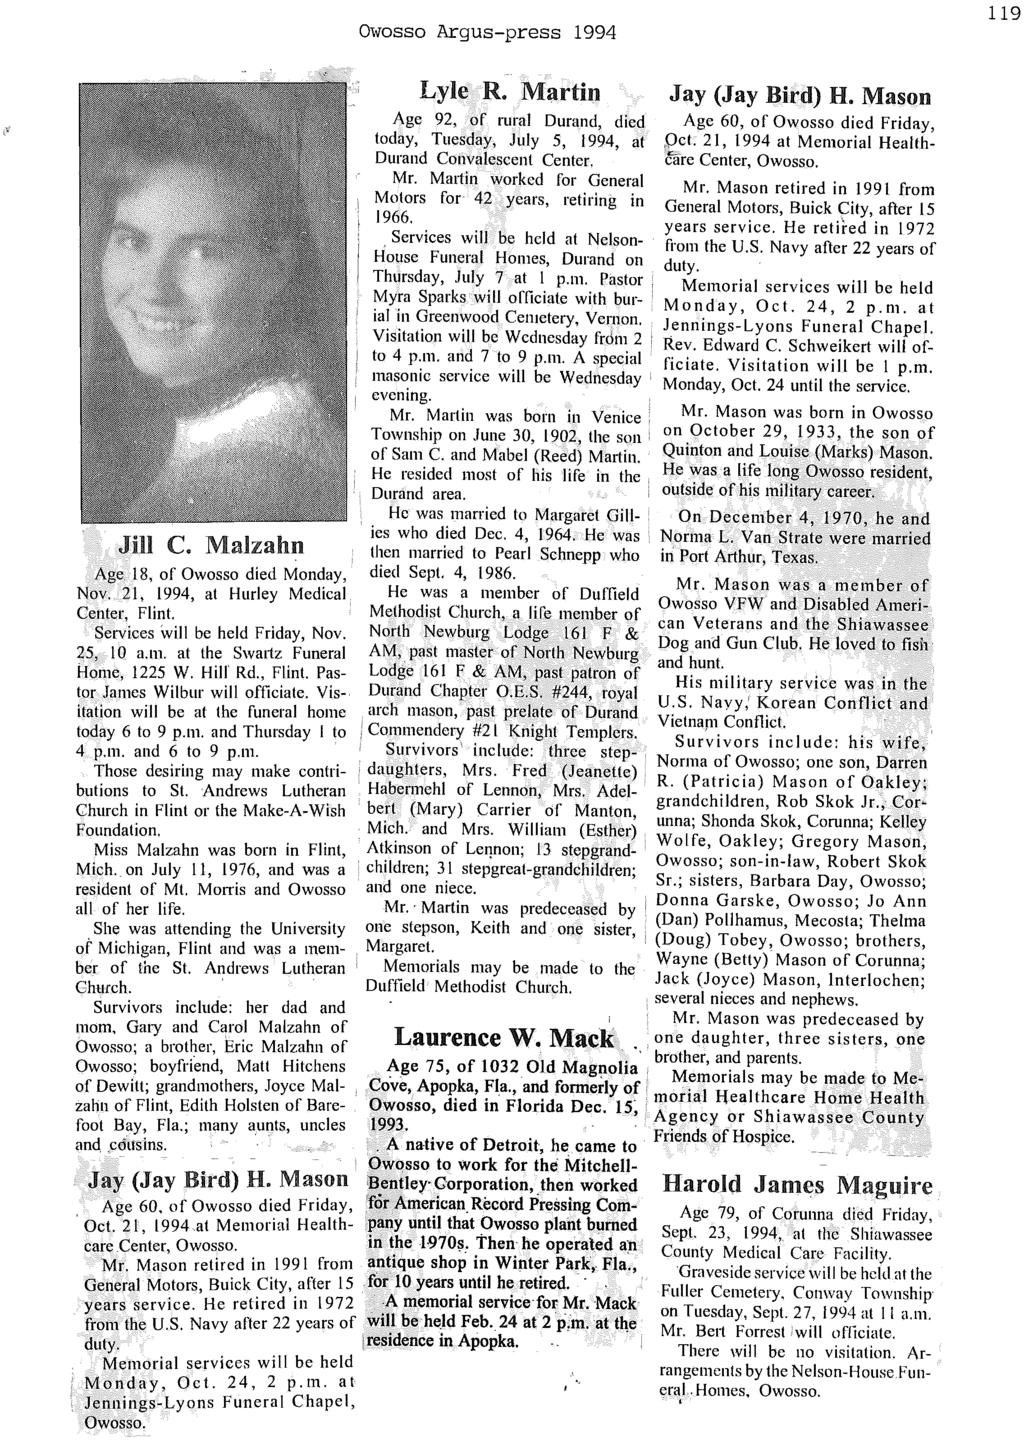 Owosso Argus-press 1994 119 Lyle R. Martin Age 92, of mral Durand, died today, Tuesday, July 5, 1994, at Durand Convalescent Center. Jay (Jay Bird) H. Mason Age 60, of Owosso died Friday,,Oct.